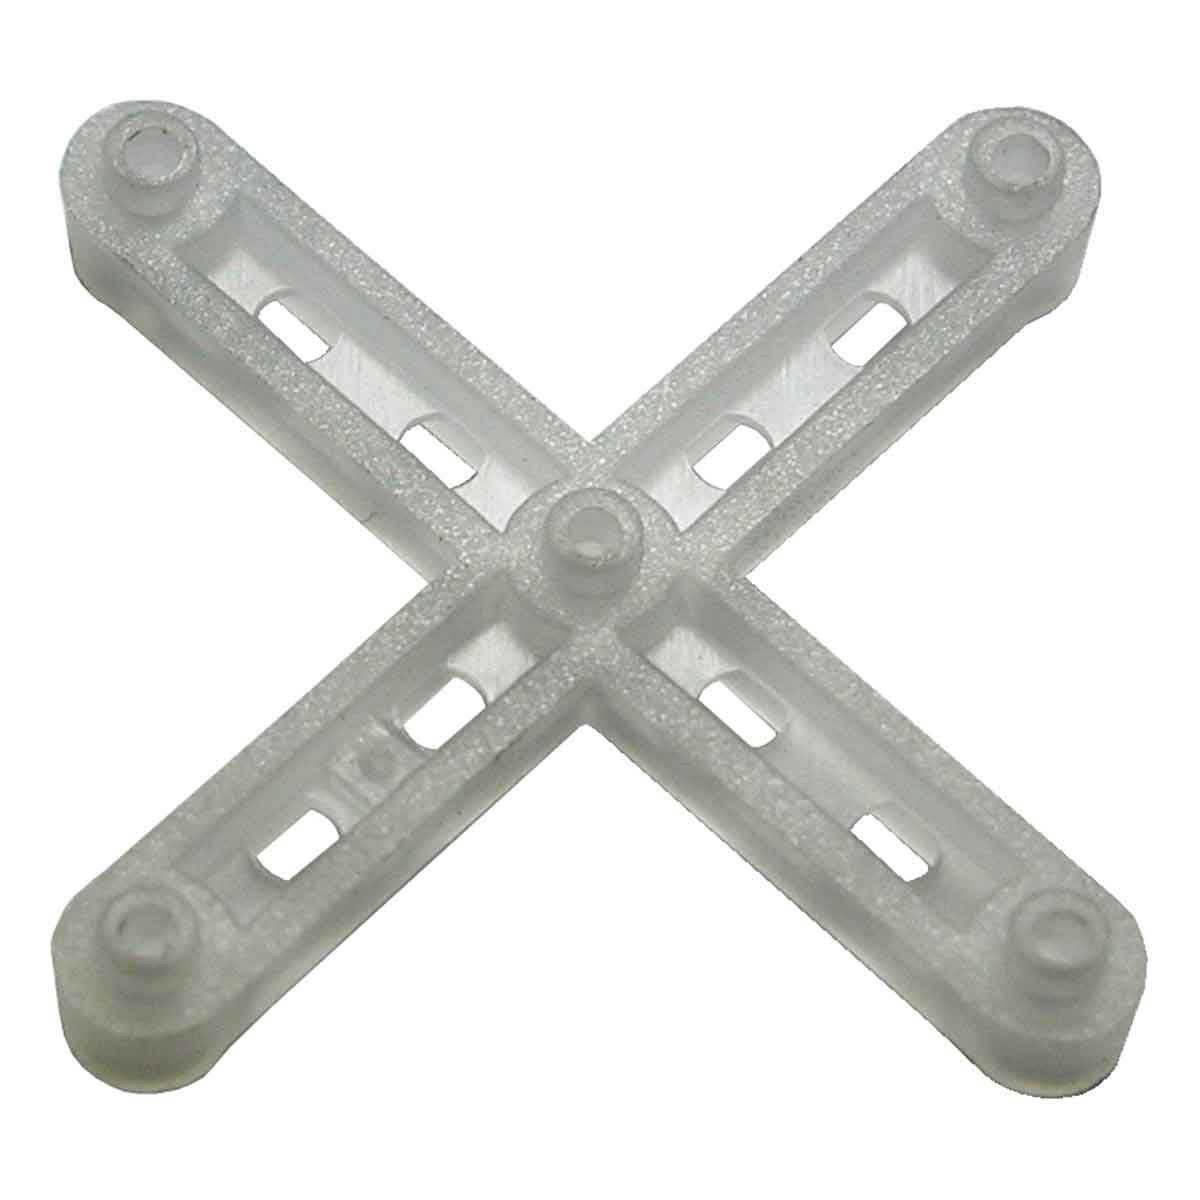 1/4 inch Leave-In Tile Spacers SPC14JAR Gray